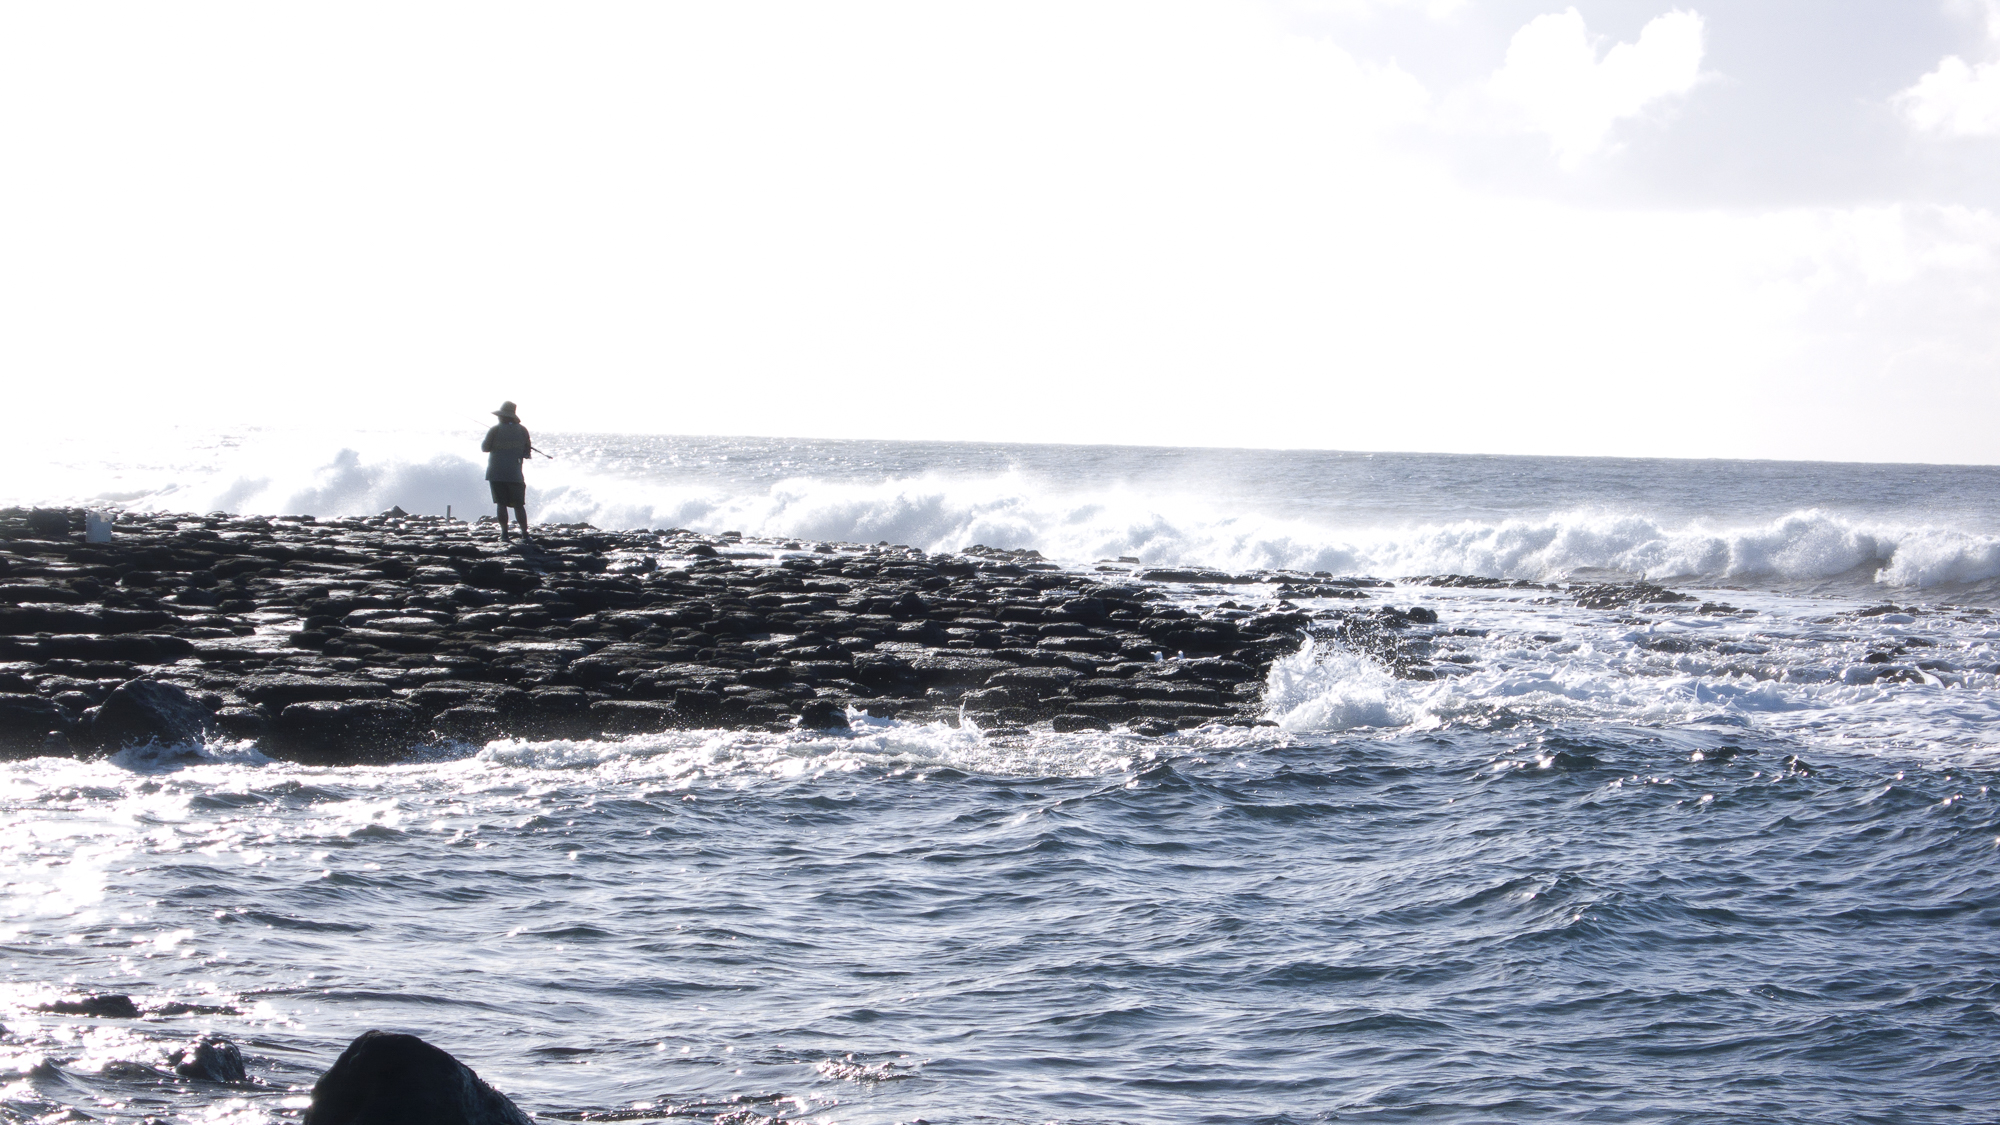 Old Man and the Sea, RAW image